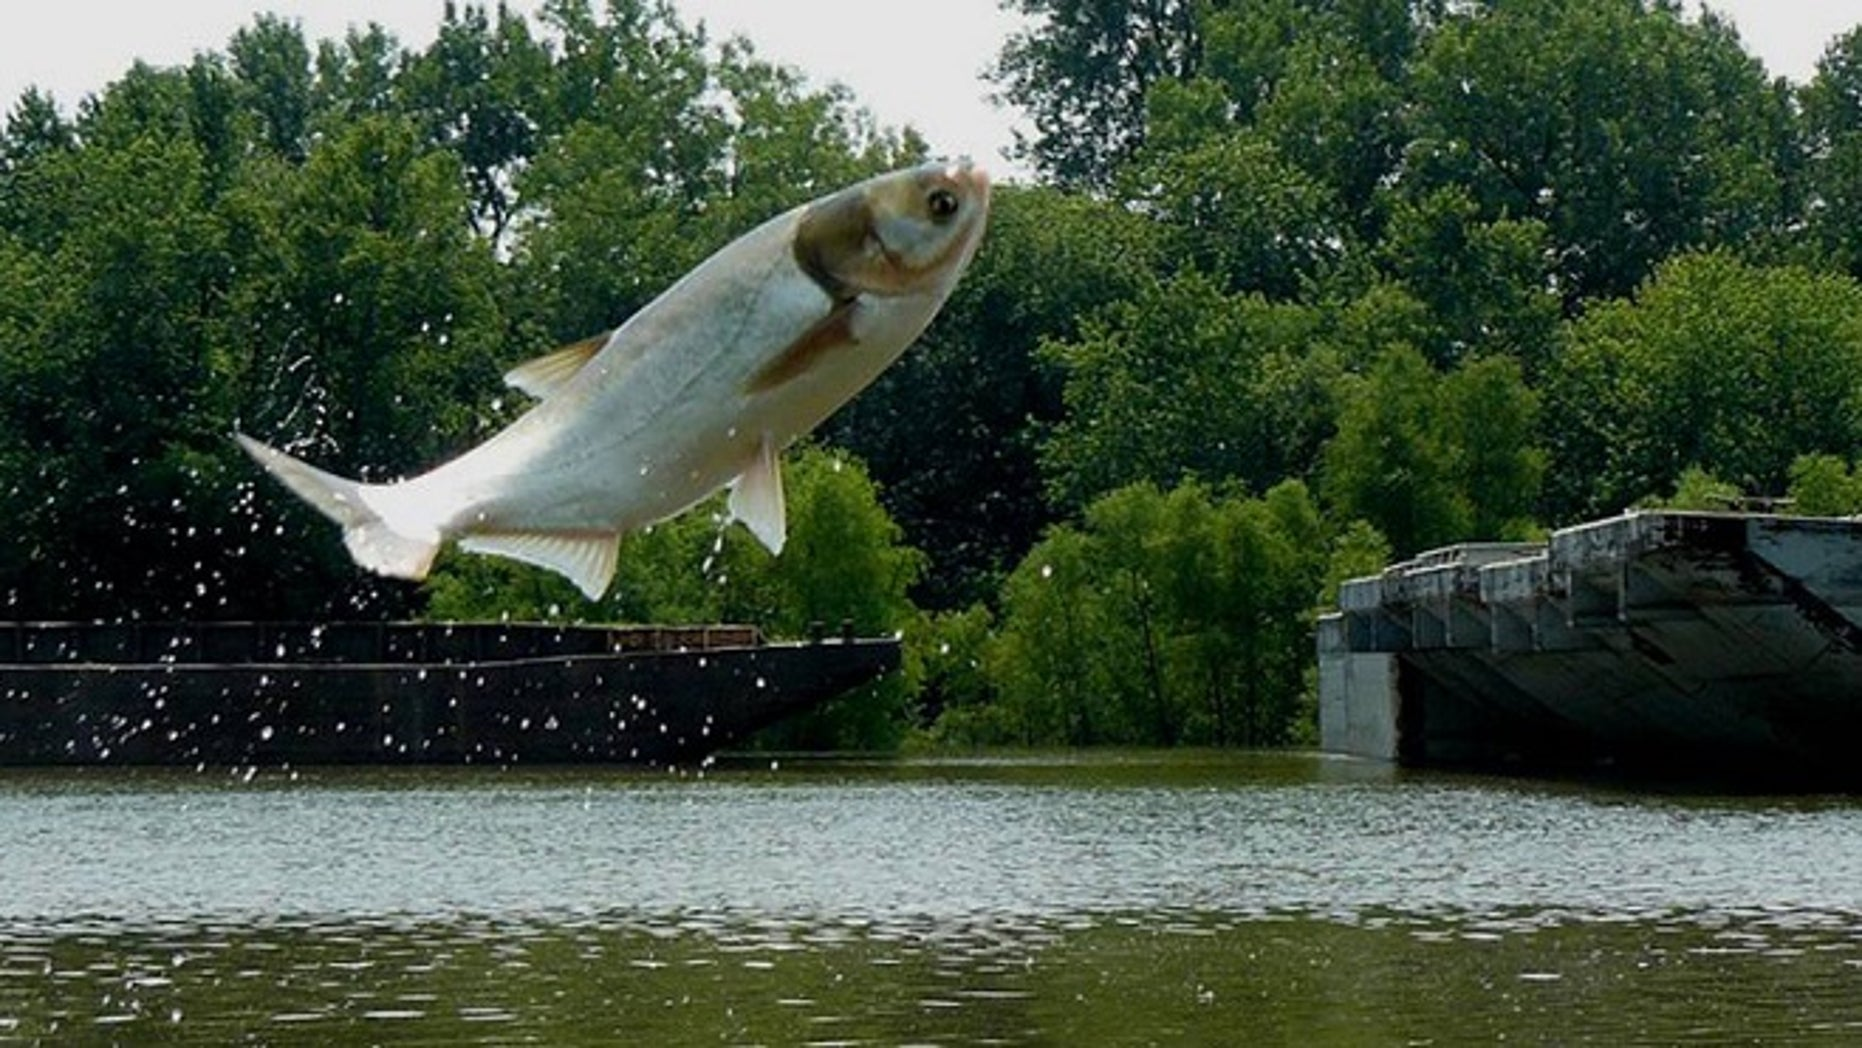 The Great Lakes Restoration Initiative is focusing on preventing invasive species, like asian carp, from entering the Great Lakes.